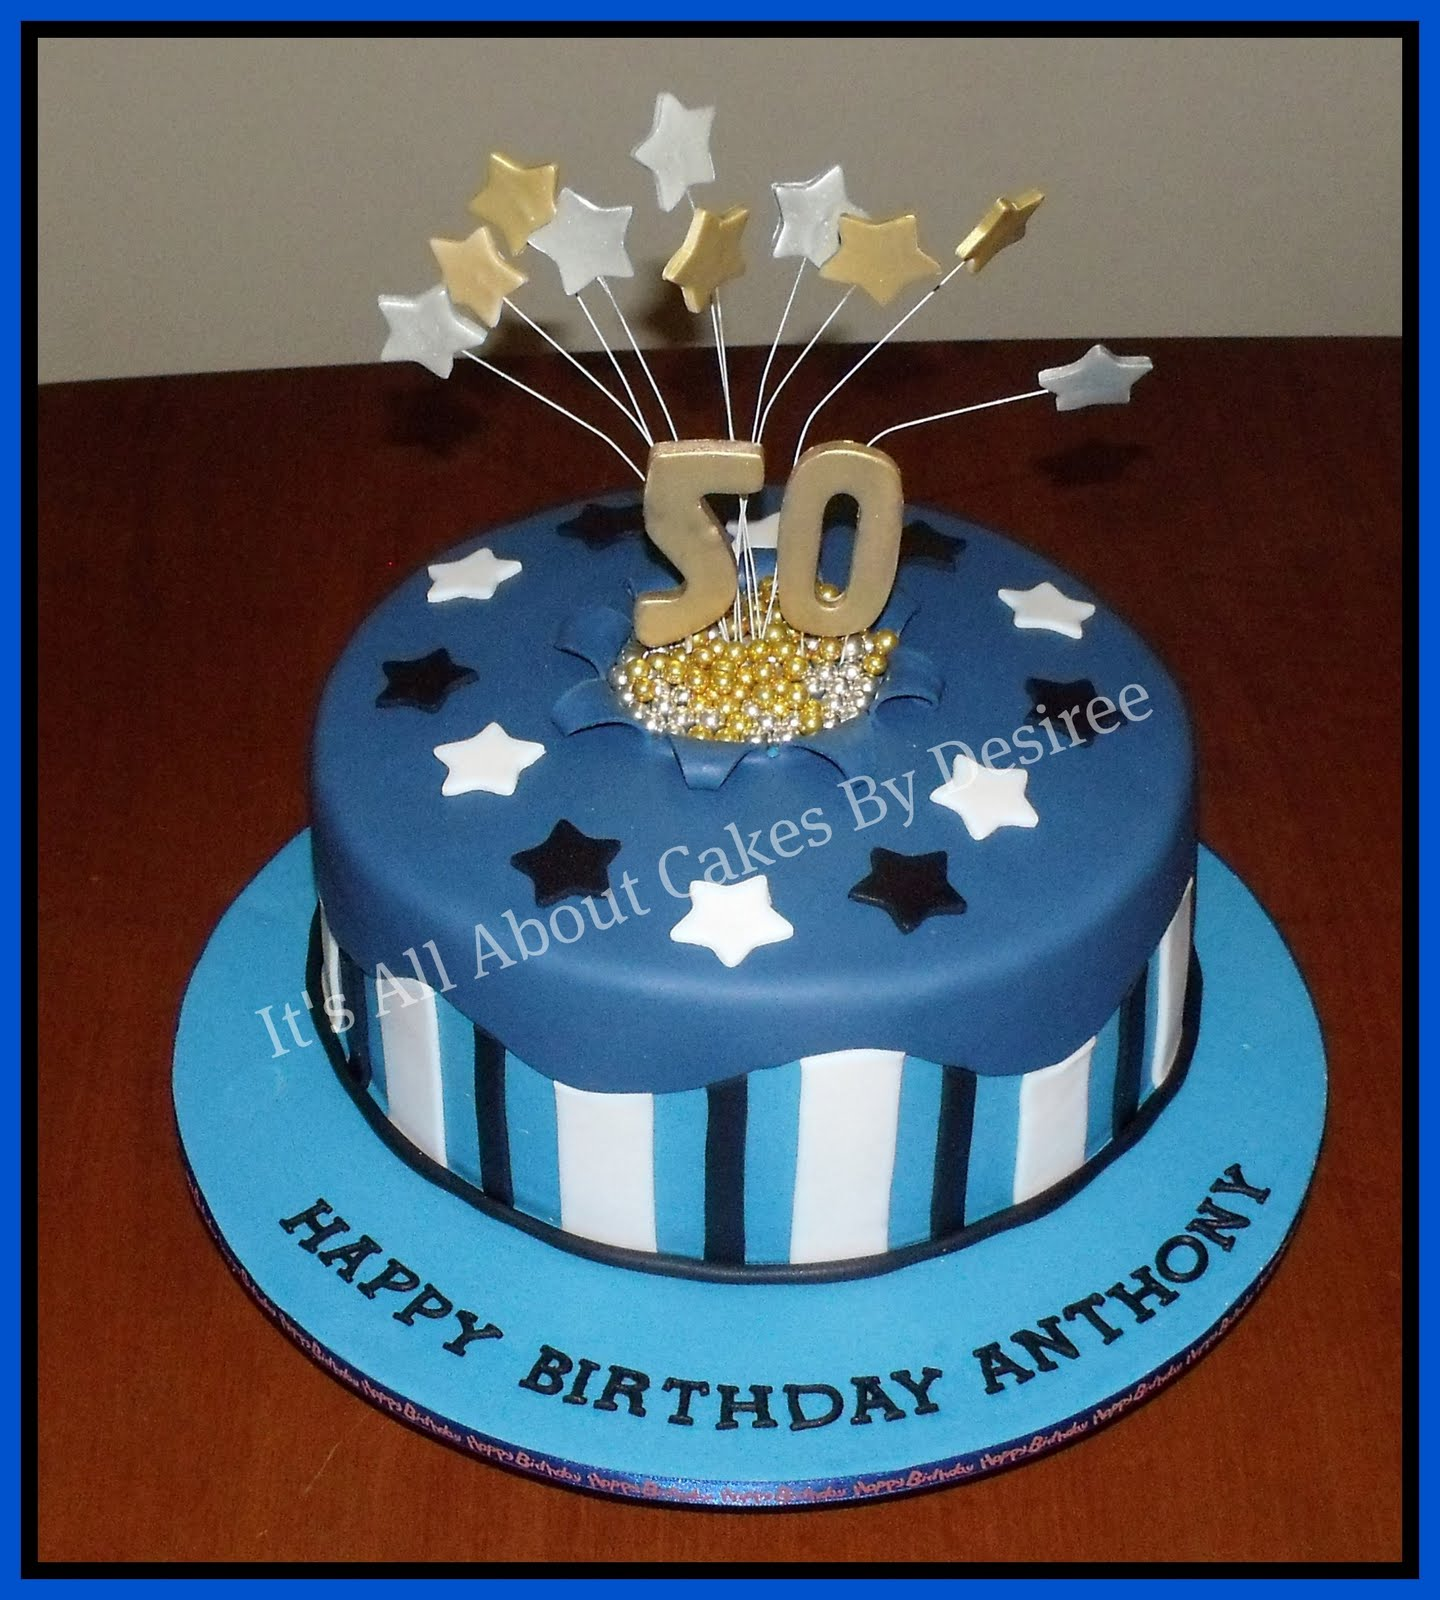 Cake Decorations For Men S Birthdays : 50th birthday cakes on Pinterest 50th Birthday Cakes ...